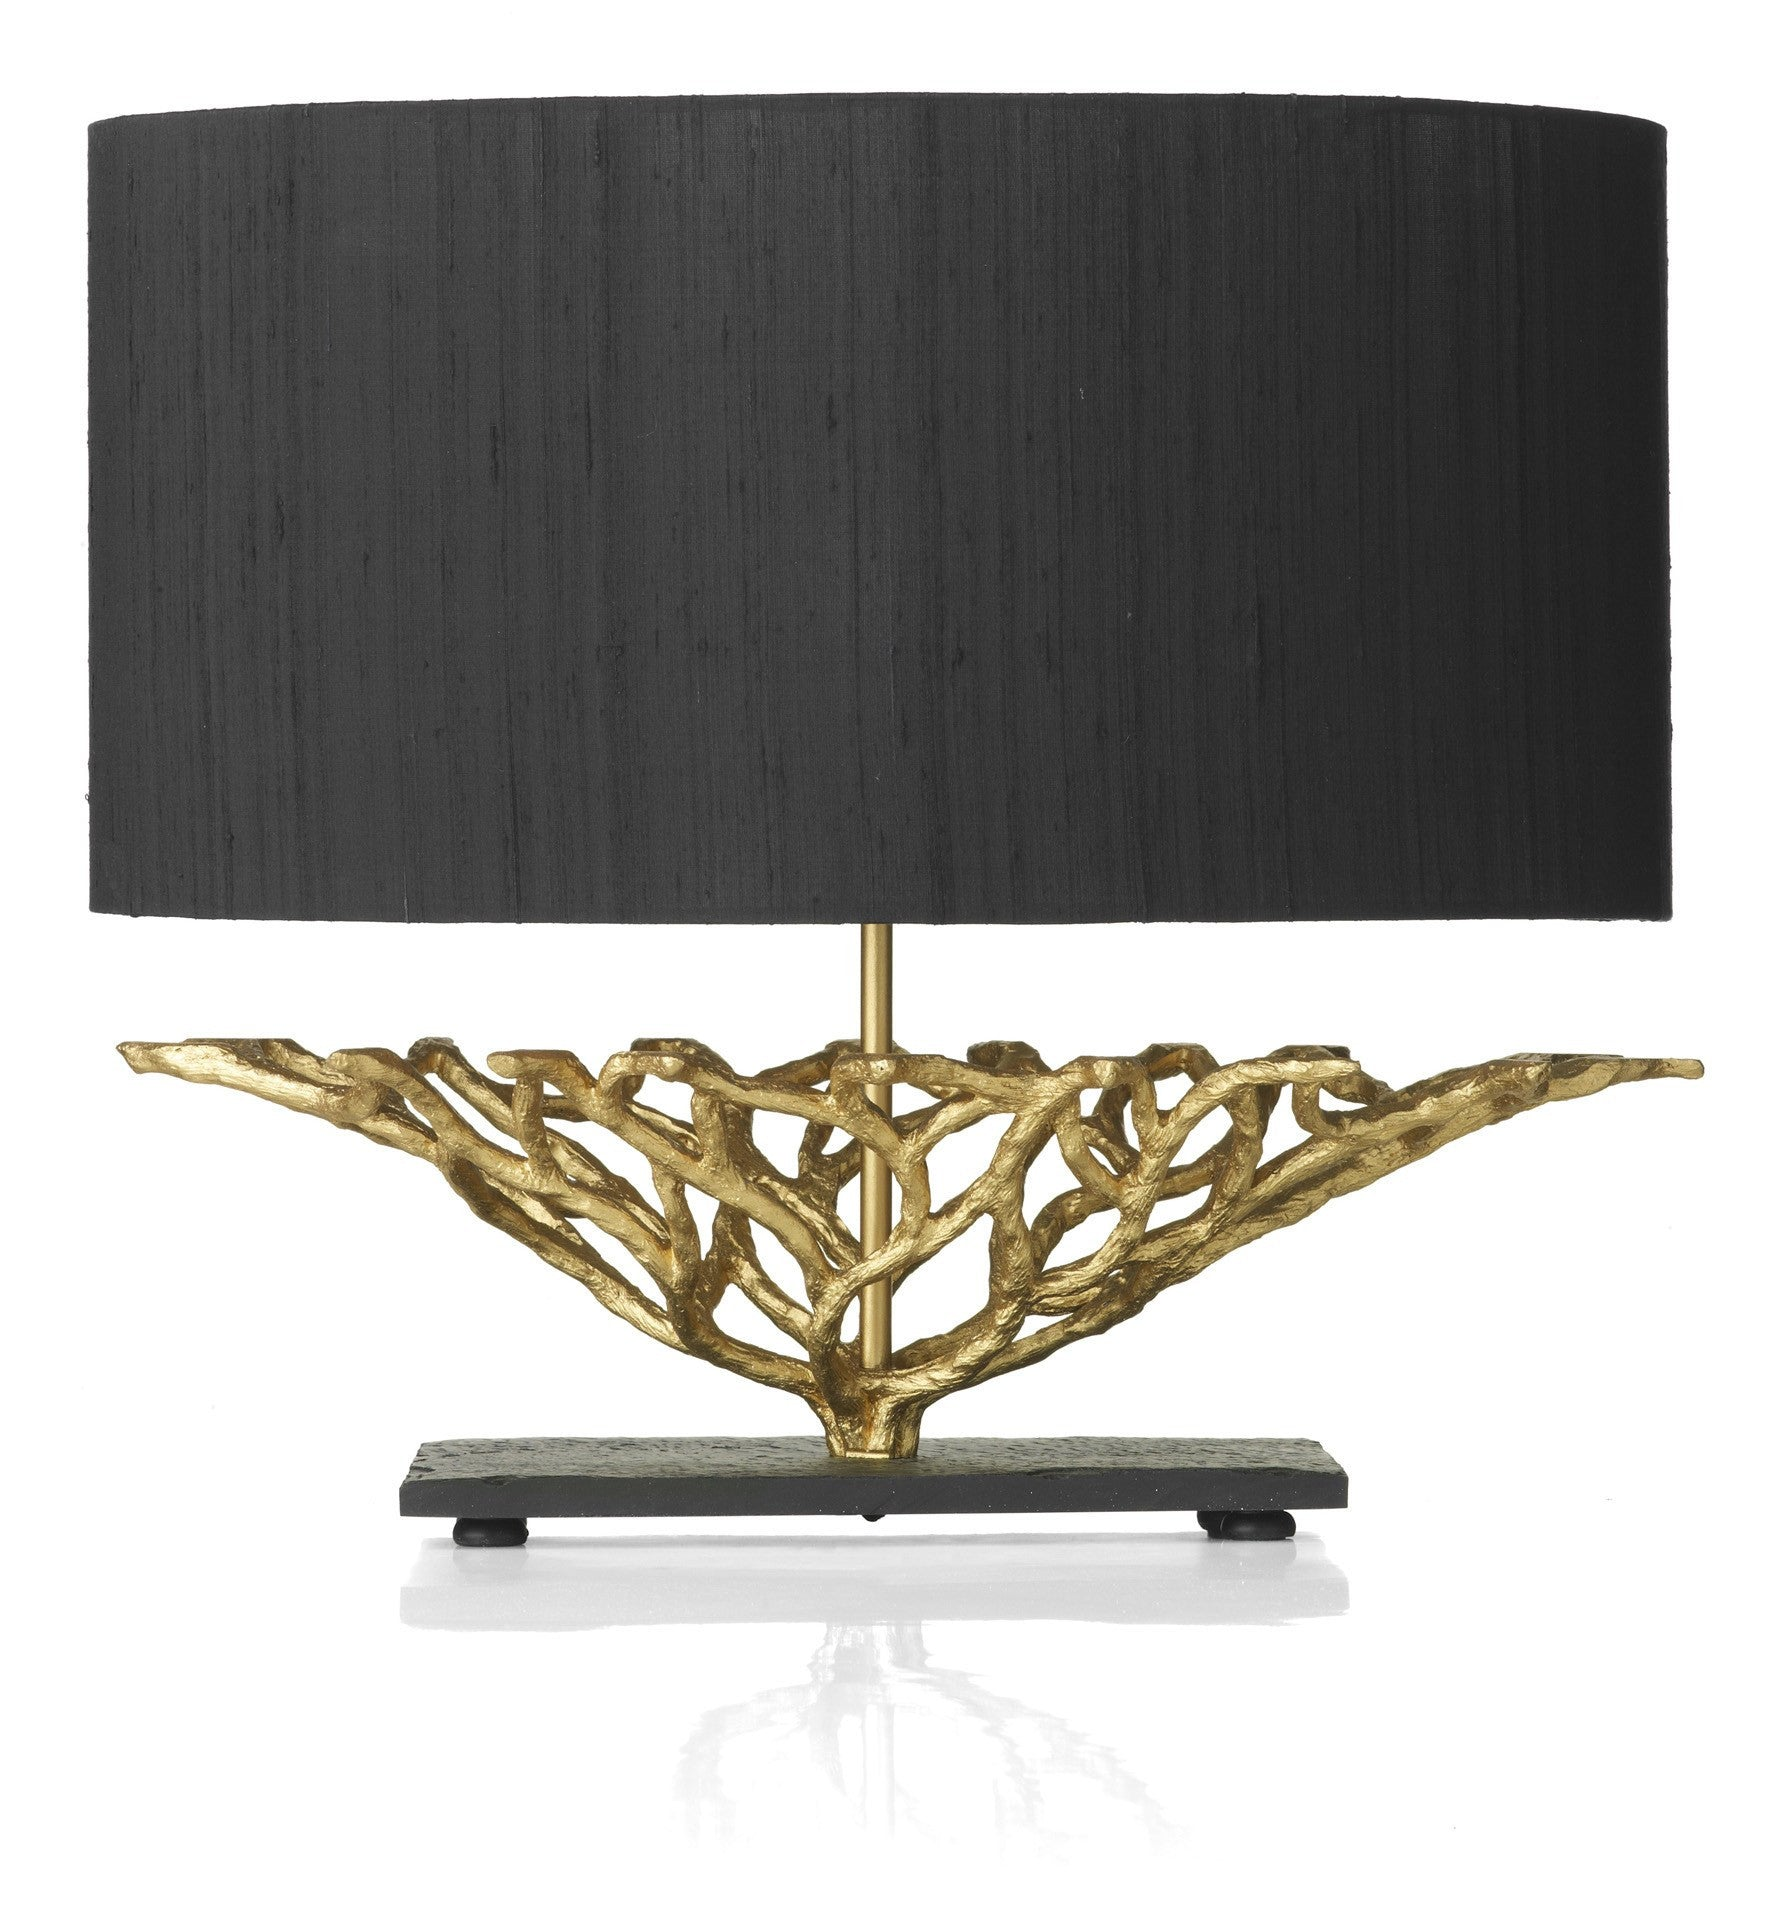 Attractive Basket Black And Gold Table Lamp   London Lighting   1